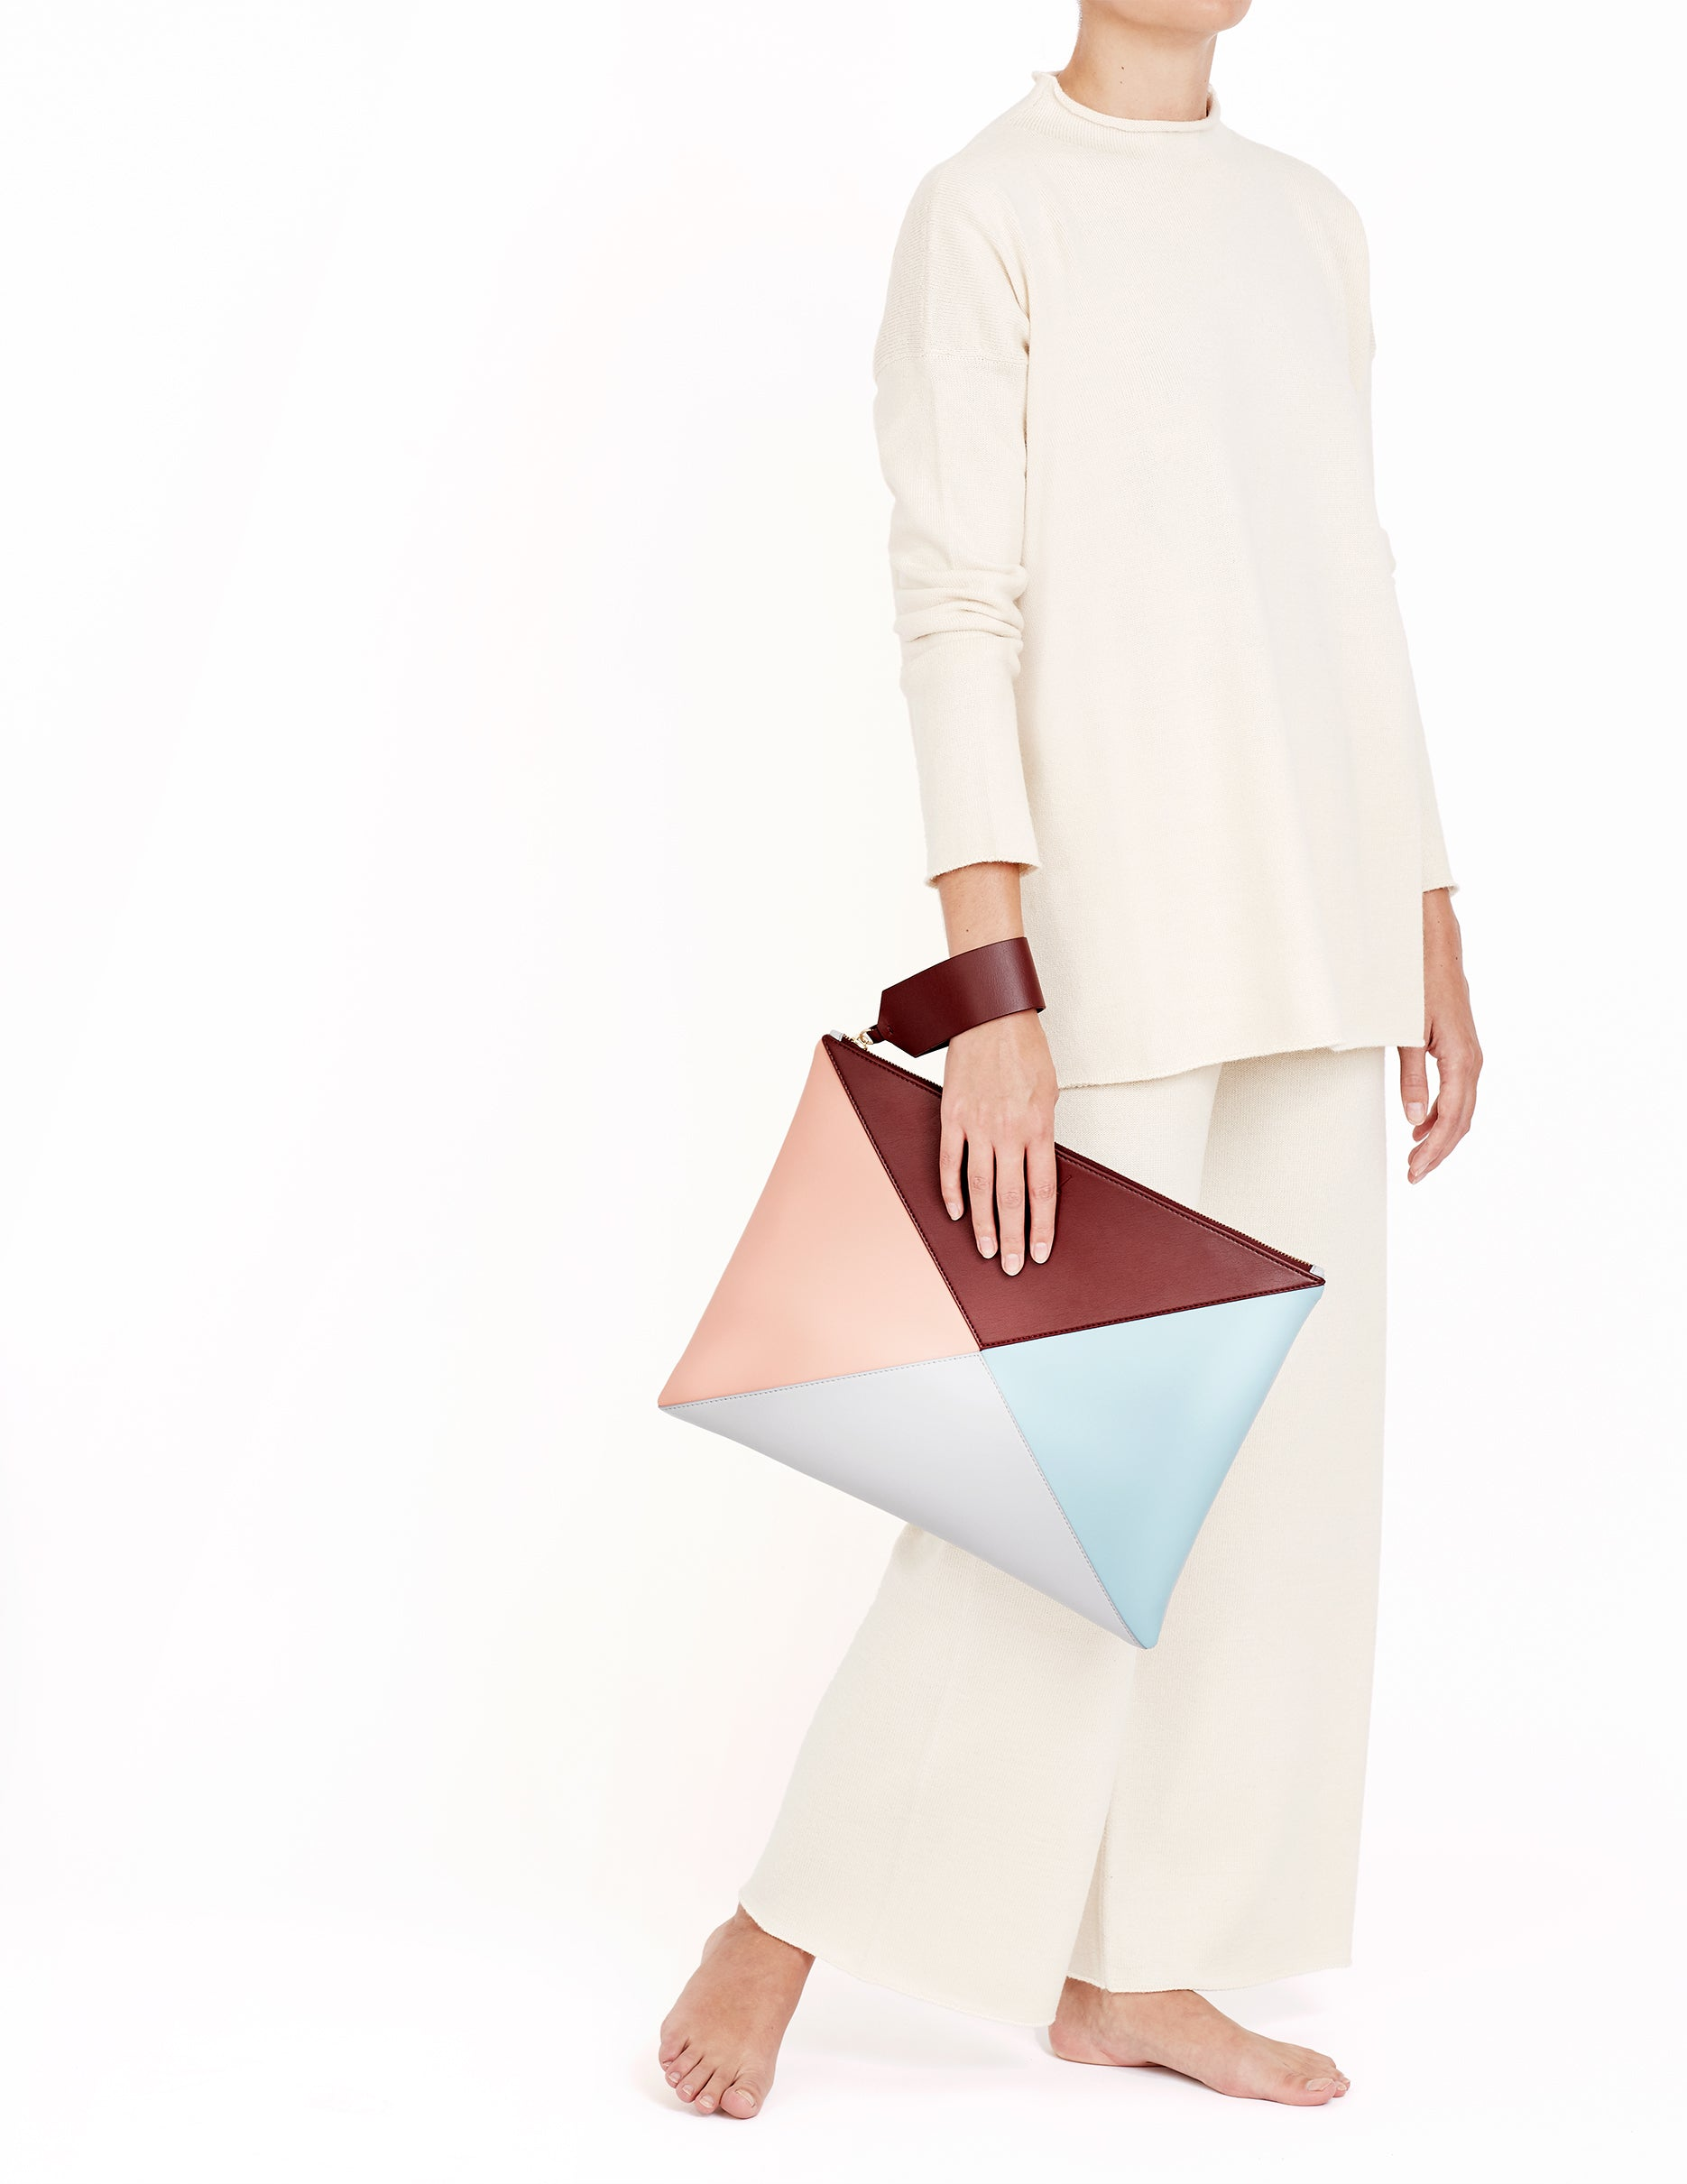 vegan leather, vegan bag, v by townsley, Cruelty-free, vegan bags uk, vegan leather bags uk, luxury vegan handbags, vegan, vegan designer handbags, ,vegan shoulder bags uk ,vegan tote bags, best vegan handbags